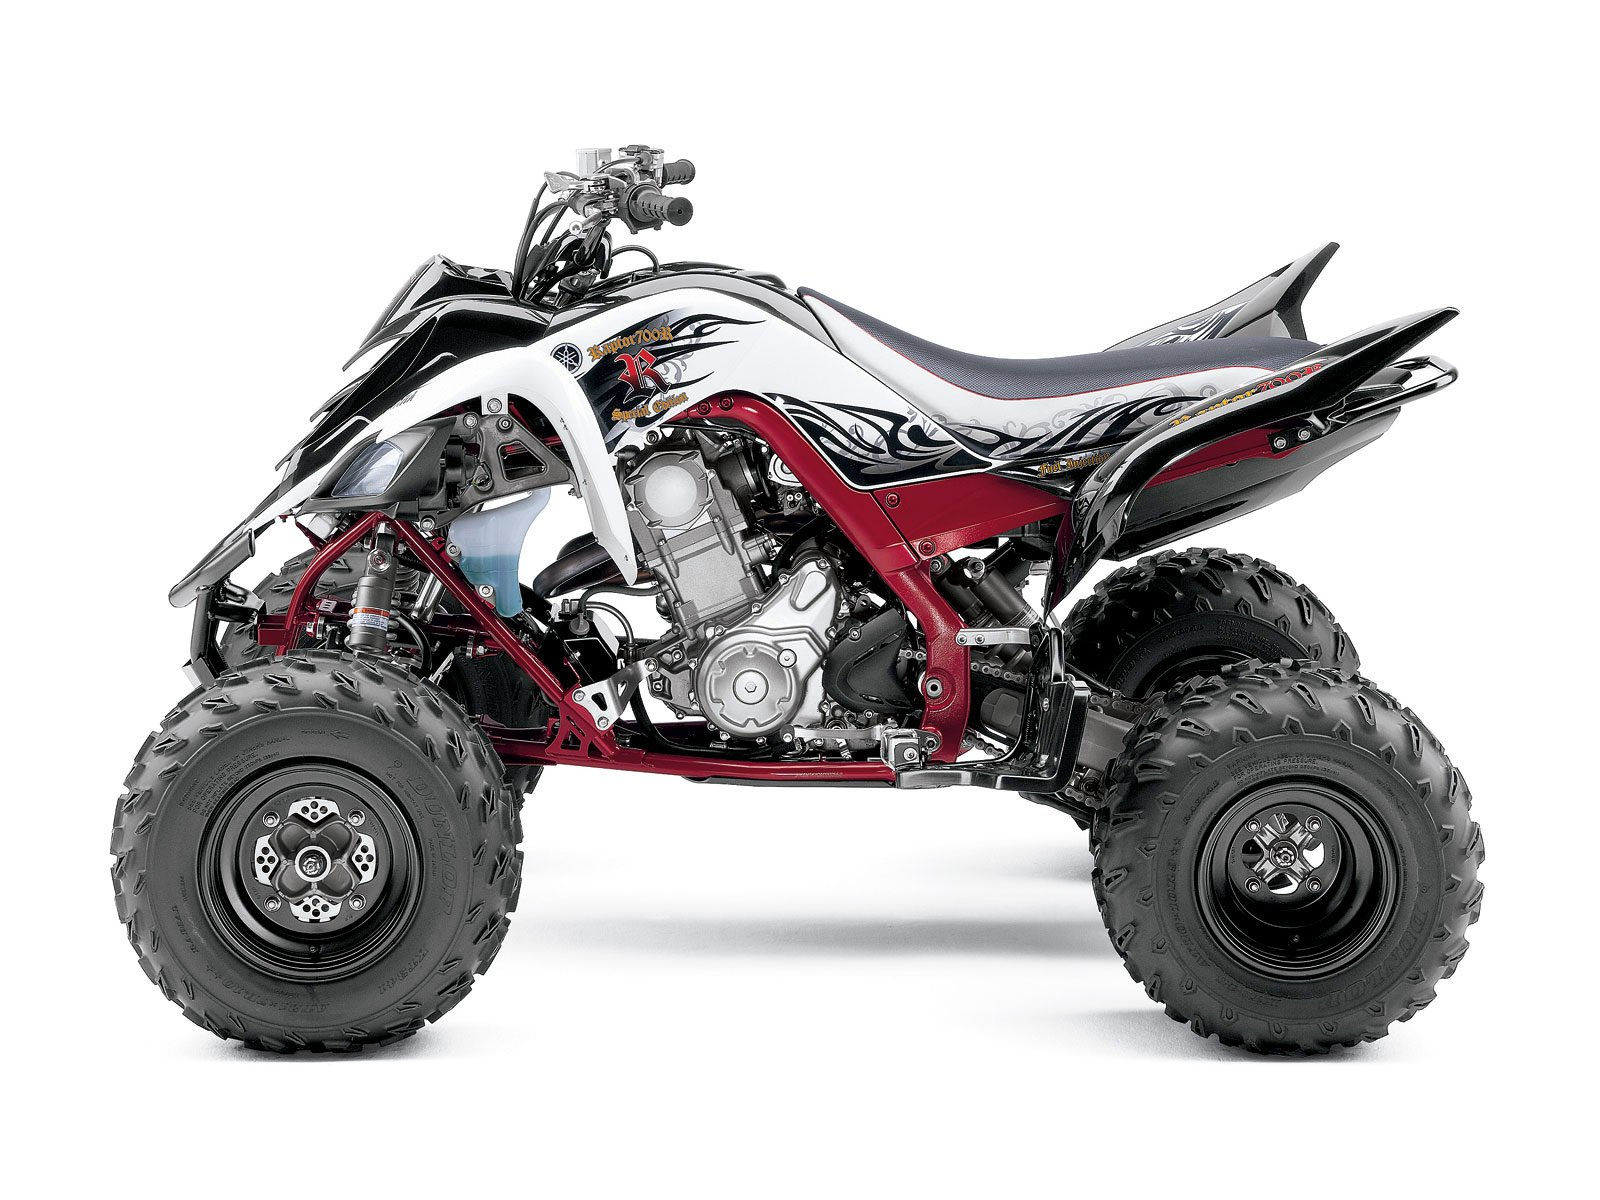 2010 YAMAHA Raptor 700R SE ATV wallpapers 1600x1200